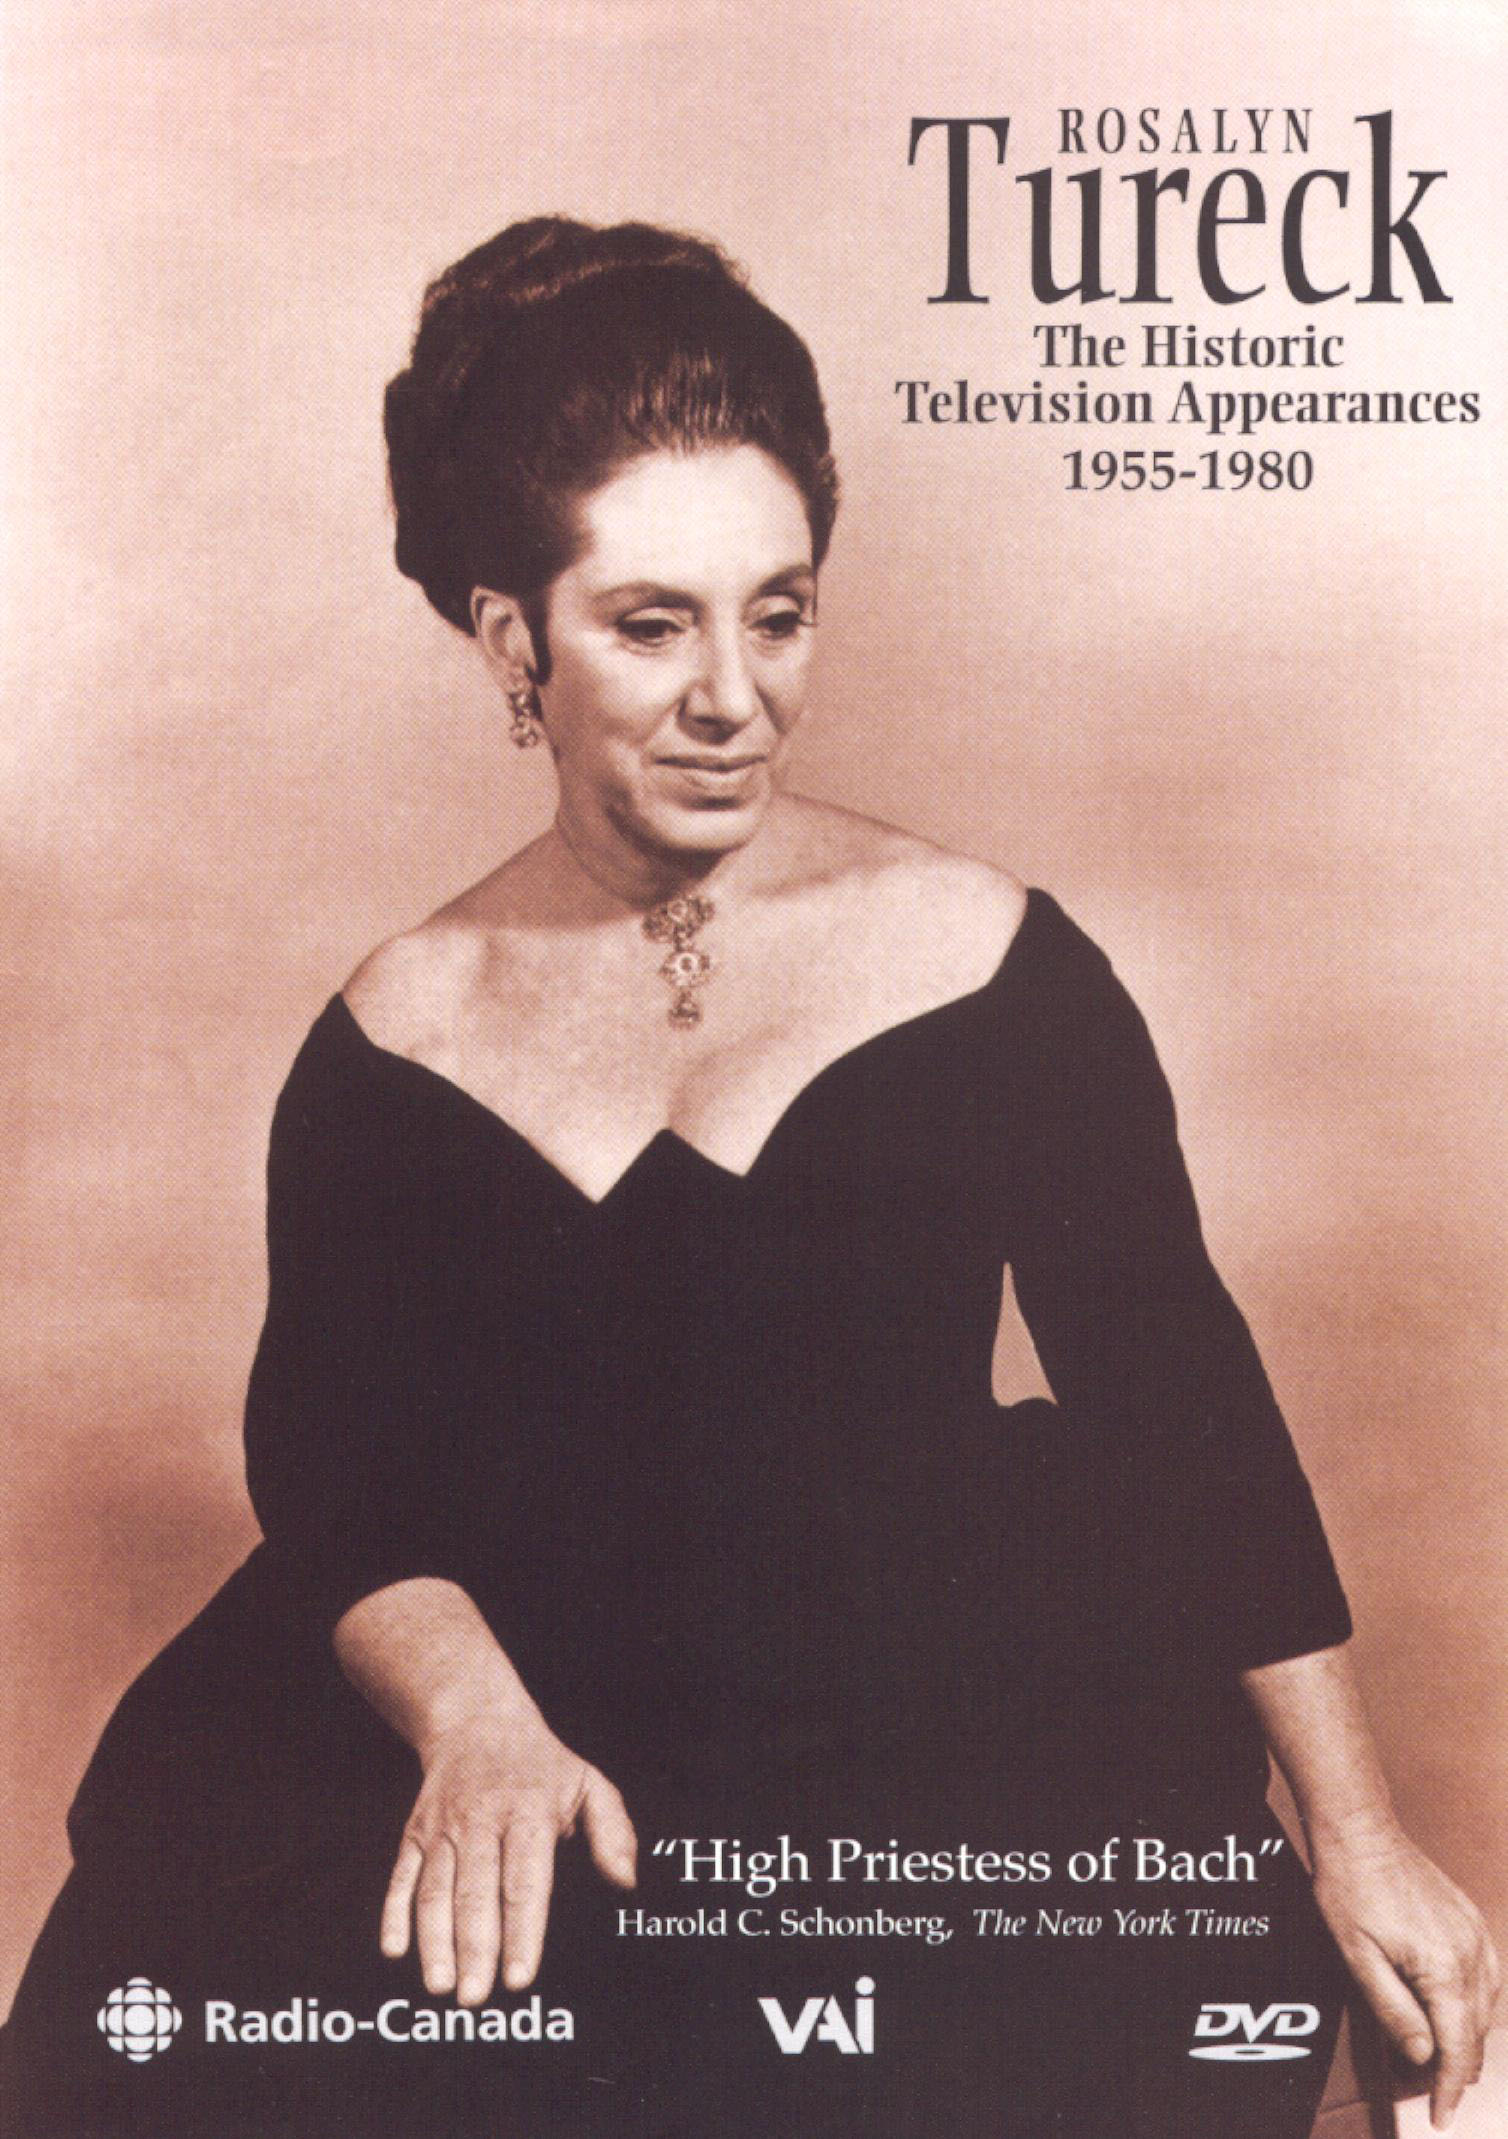 Rosalyn Tureck: The Historic Television Appearances, 1955-1980